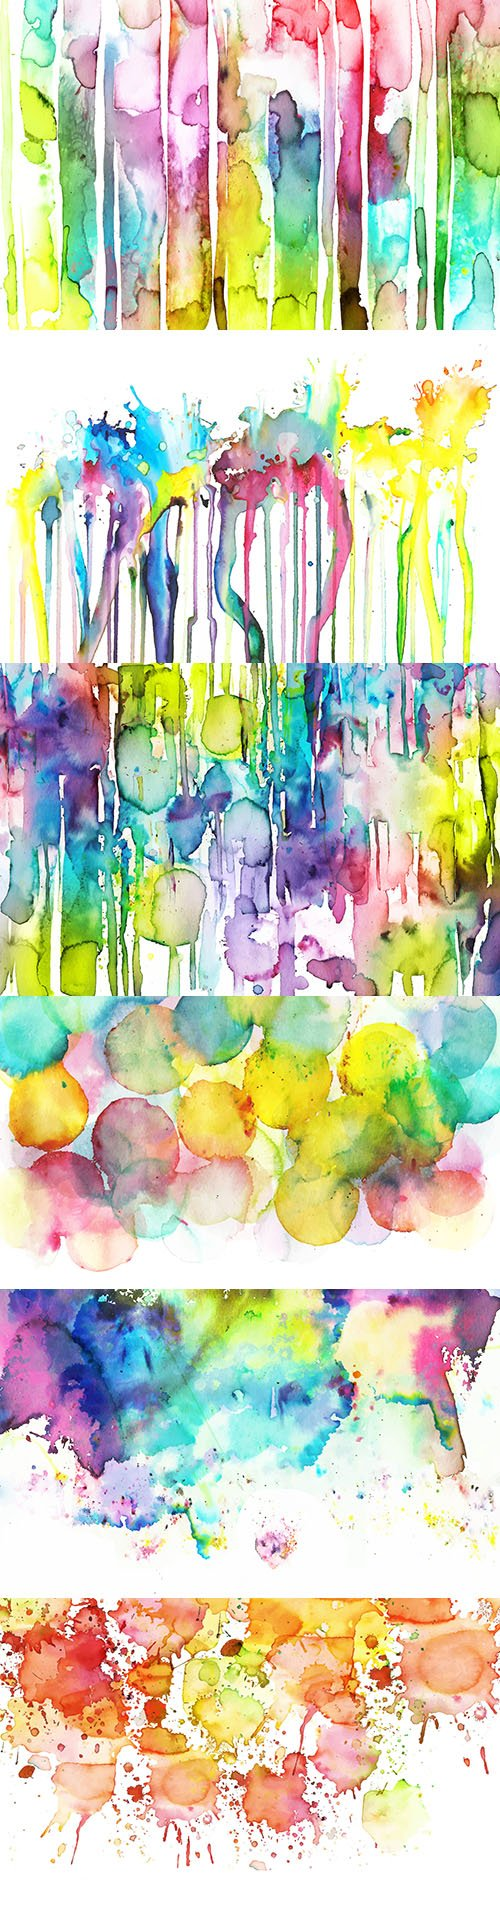 Watercolor splashes bright abstract background